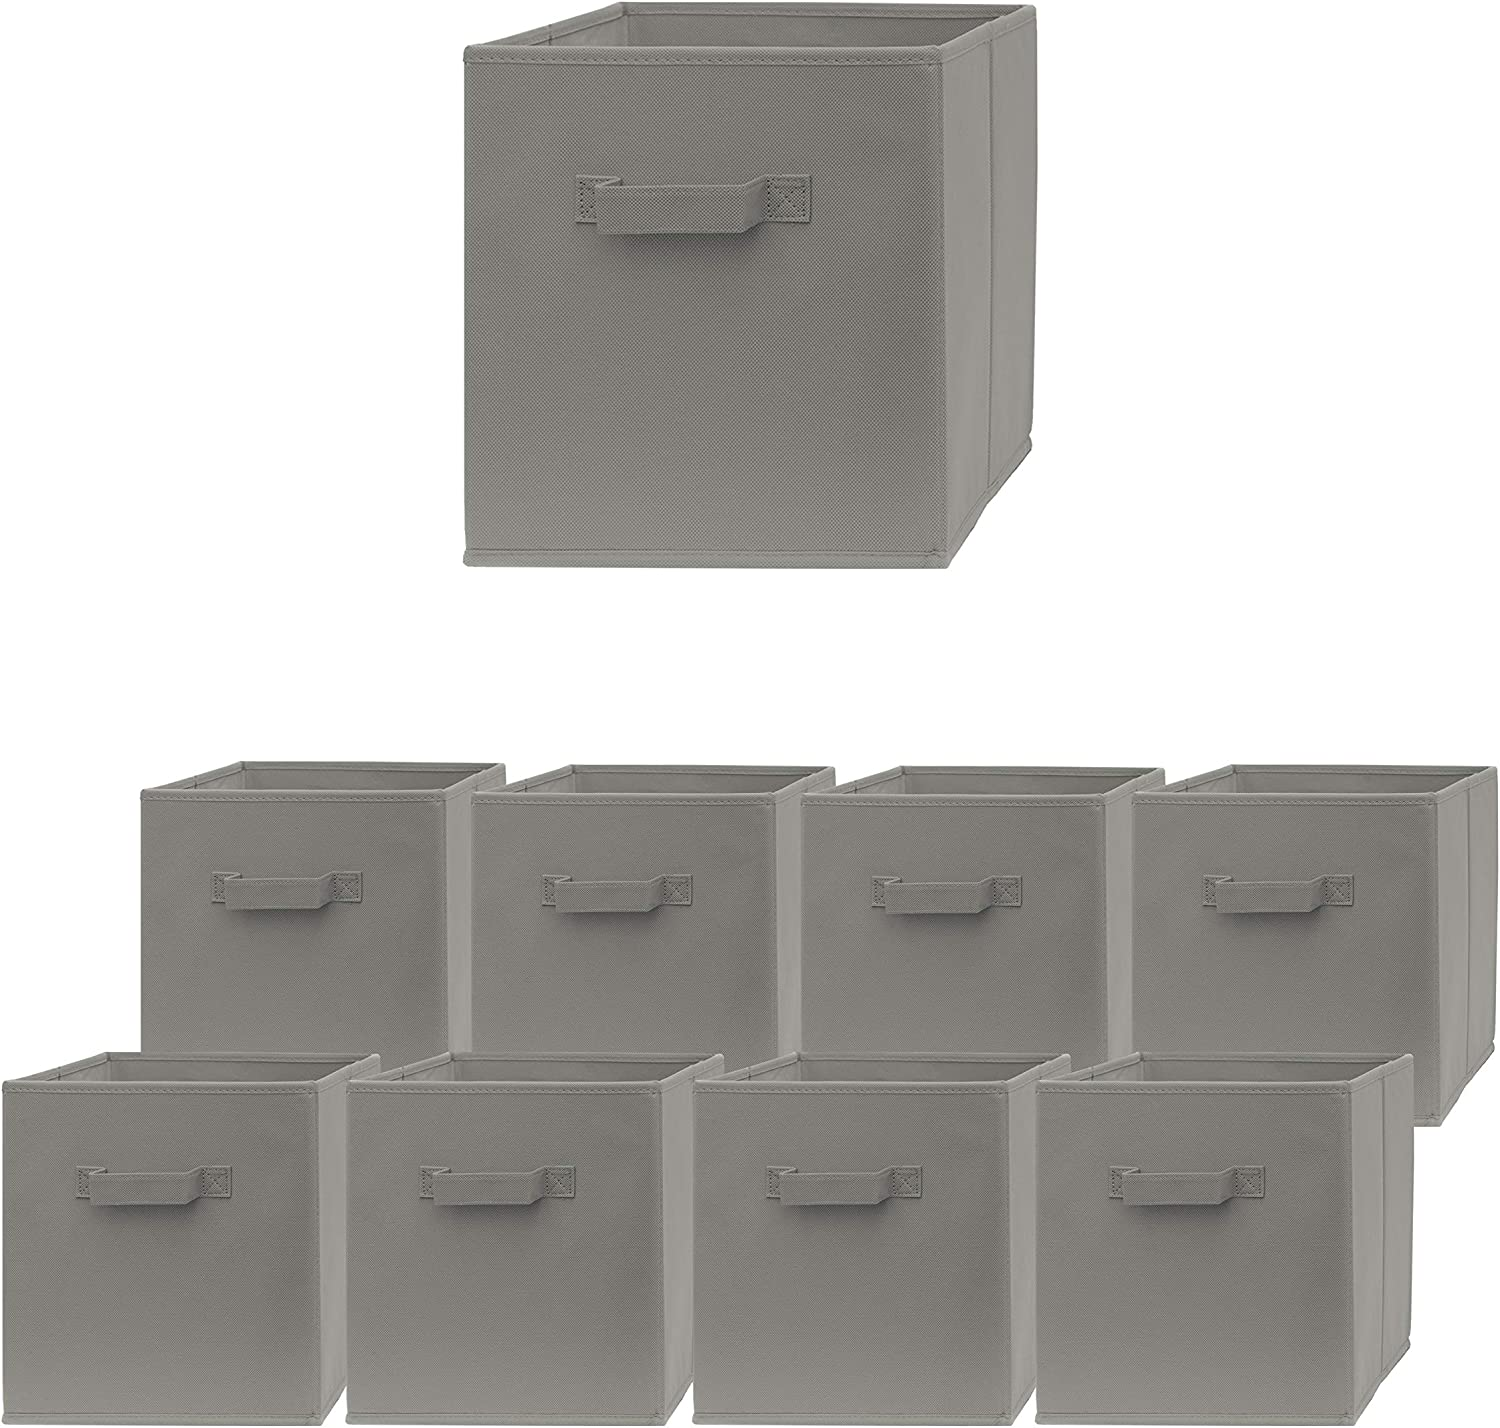 Pomatree Storage Cubes - 9 Pack - Durable and Sturdy Storage Bins with 2 Reinforced Handles | Fabric Cube Baskets for Organizing Closet, Clothes and Toys | Foldable Shelves Organizer (Light Grey)